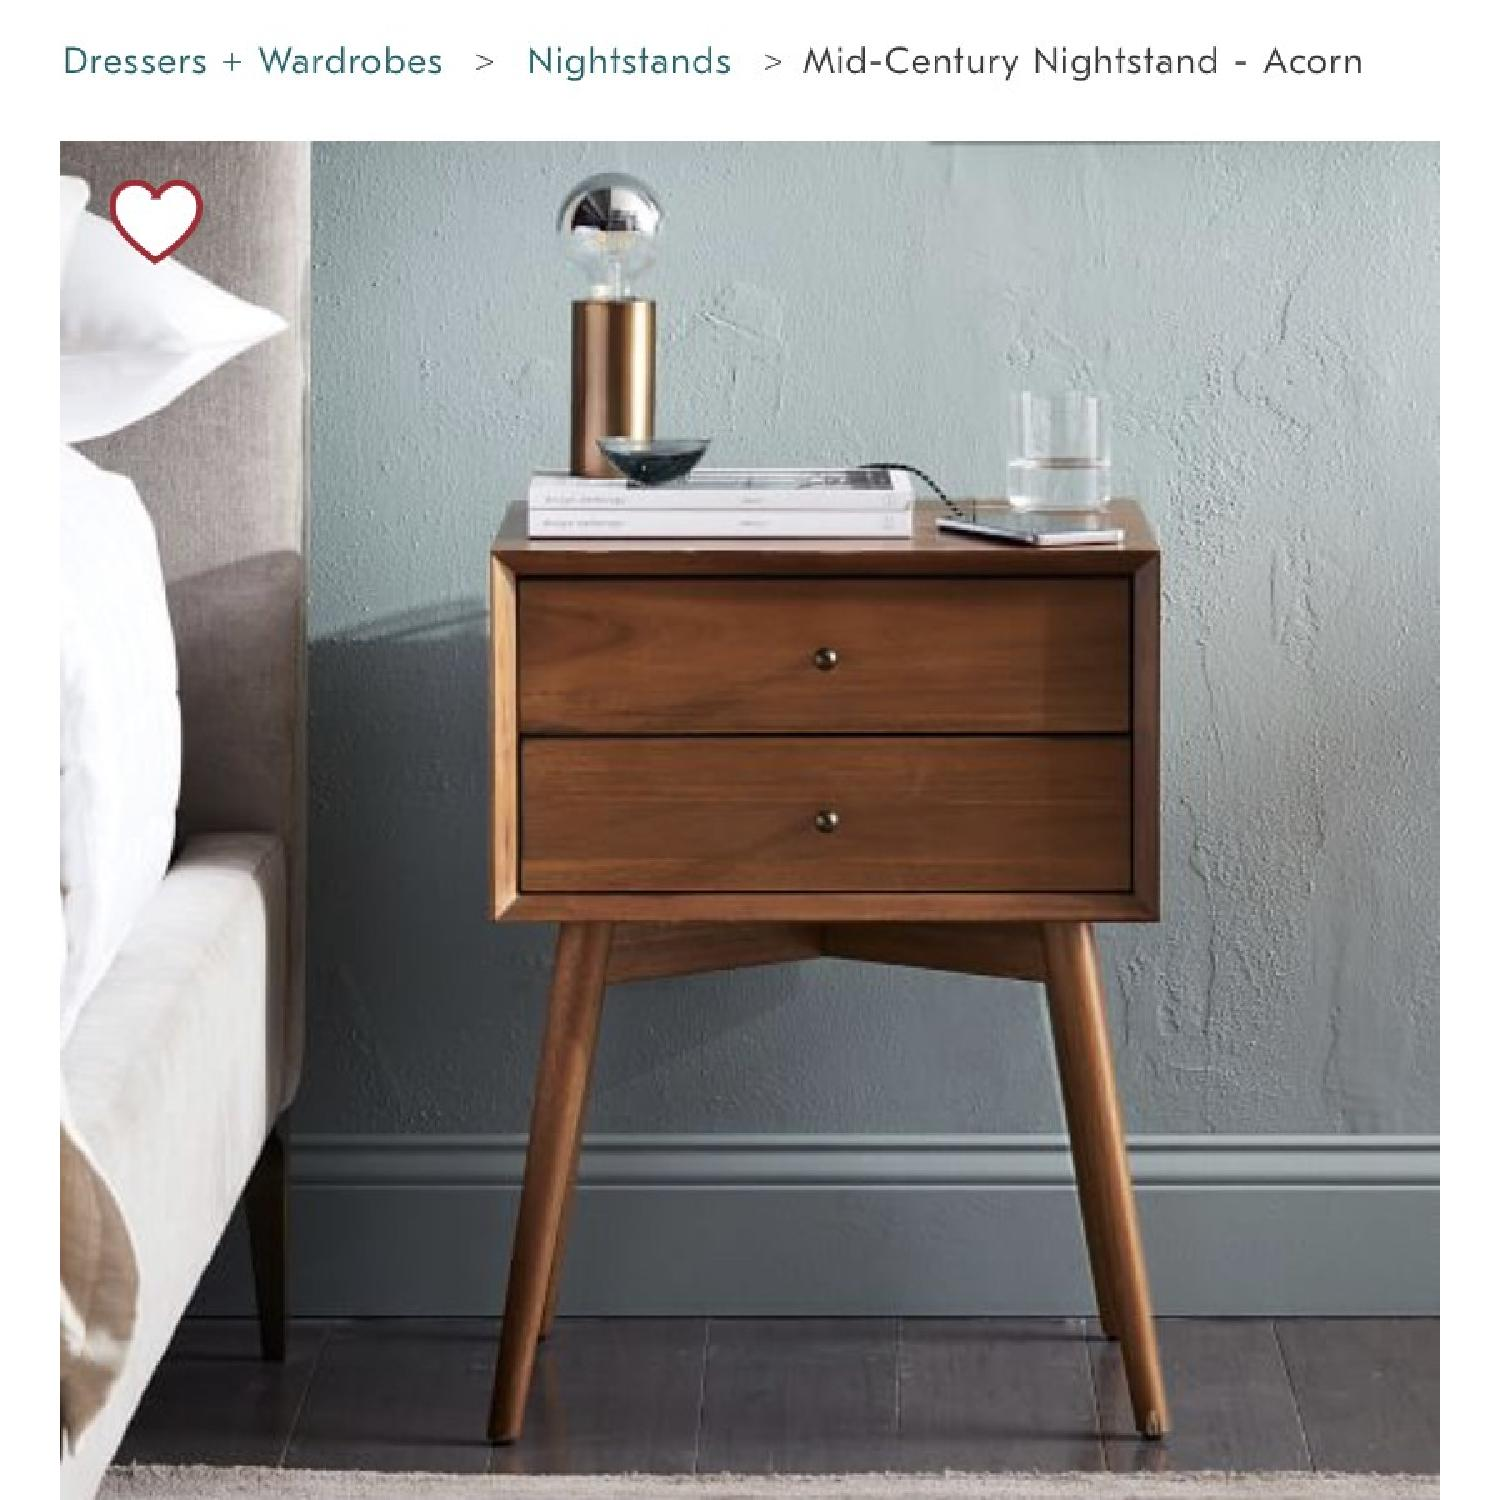 West Elm Mid Century Nightstand in Acorn-1